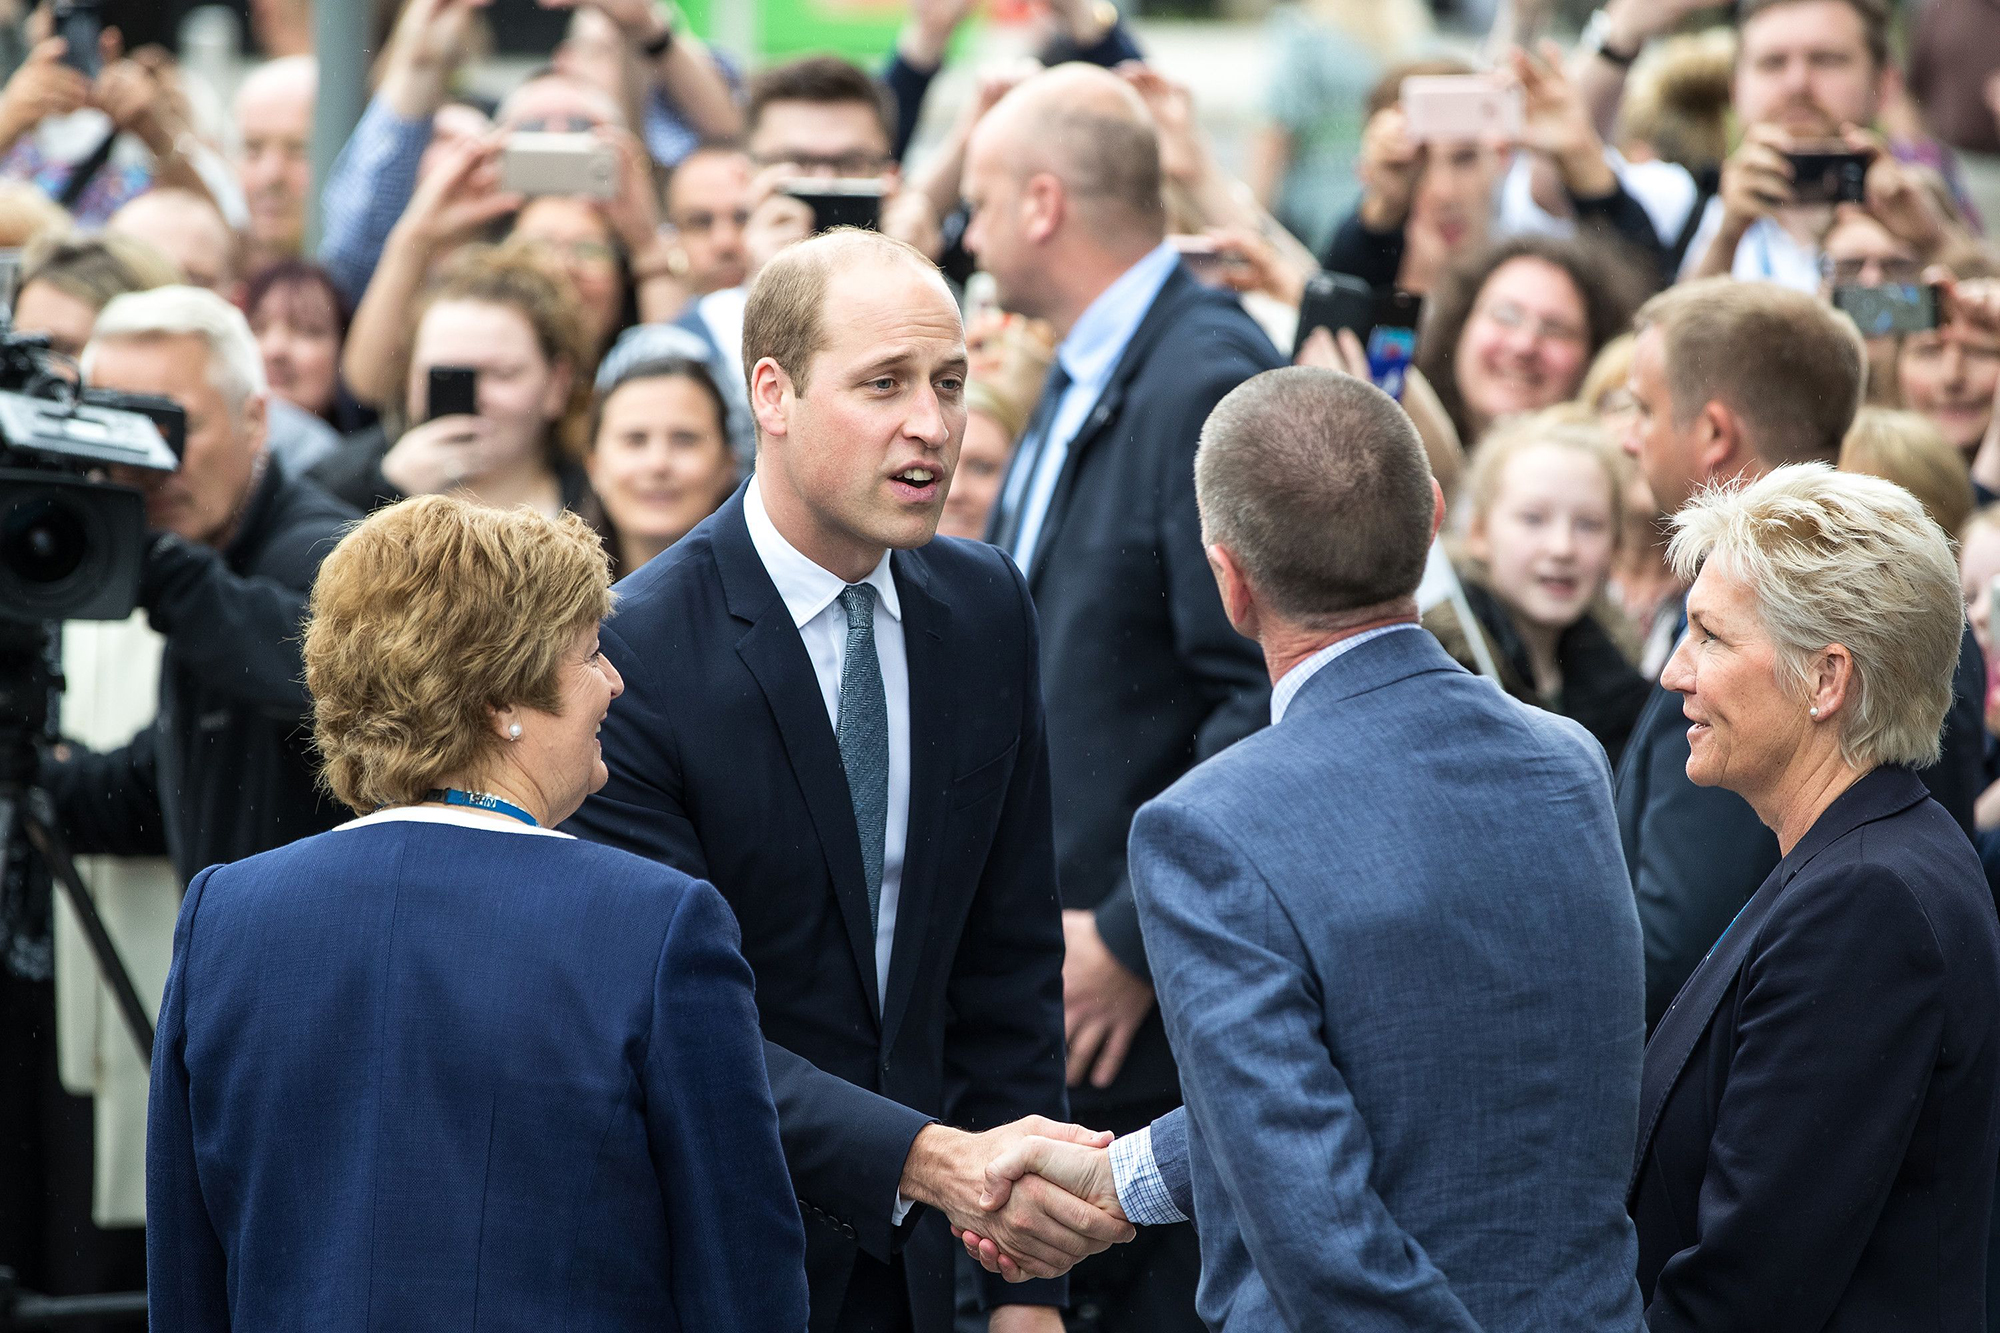 Prince William visit to Manchester, UK - 02 Jun 2017